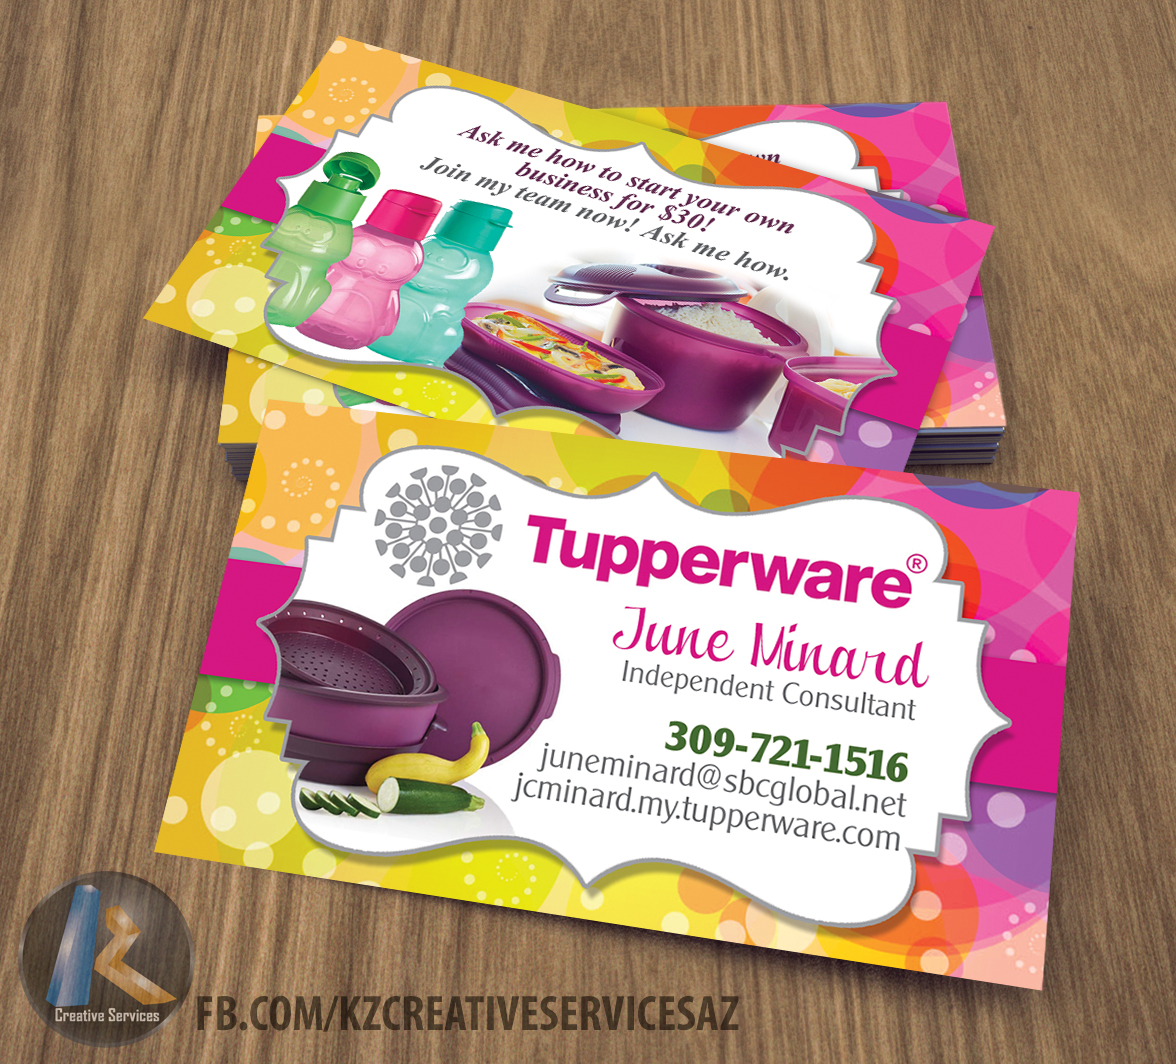 Tupperware business cards style 3 kz creative services online tupperware business cards style 3 colourmoves